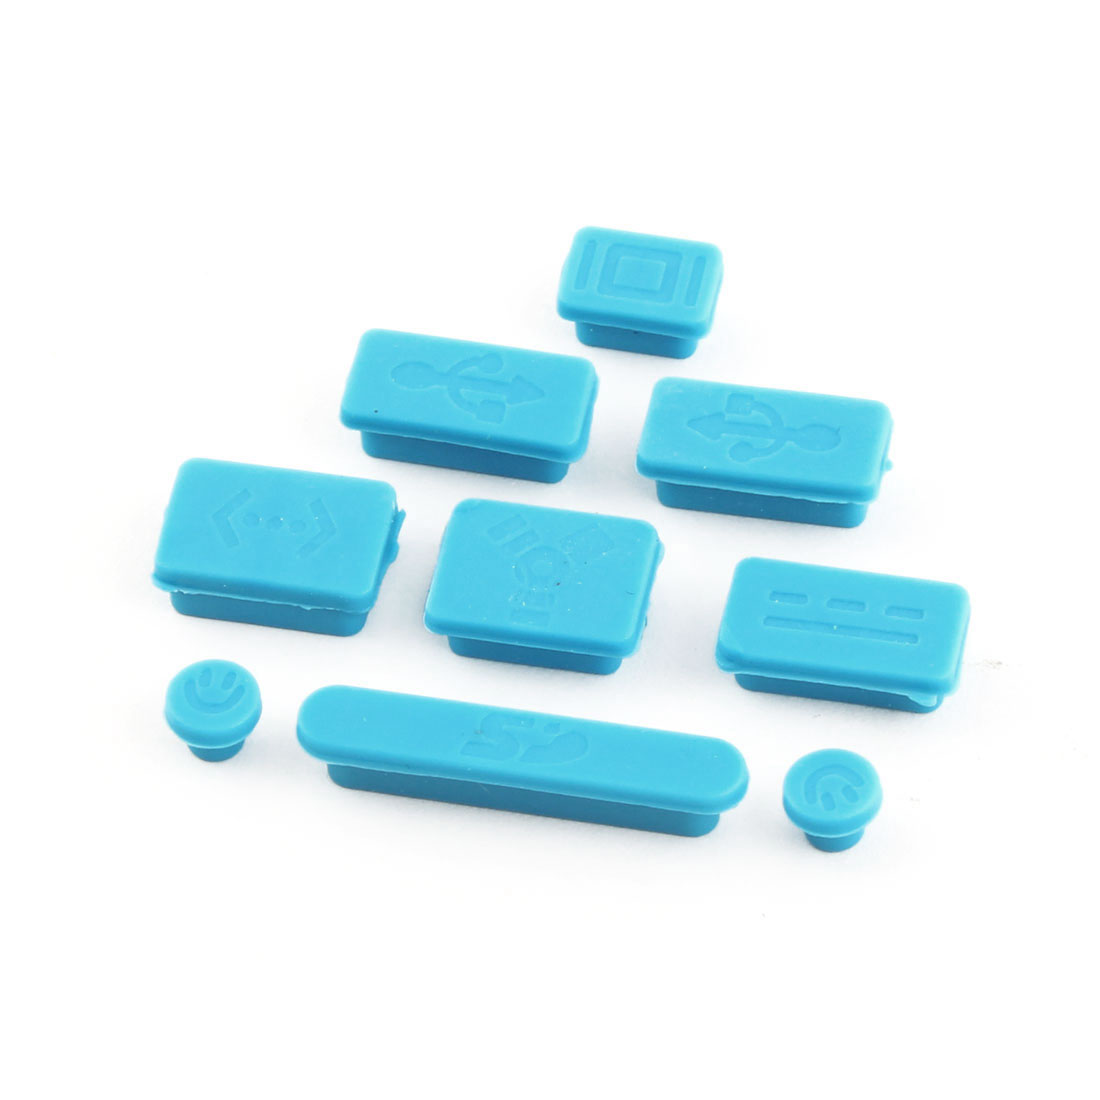 Computer Silicone Protective Notebook Anti Dust Connector Set Blue 9 in 1 for Macbook Pro